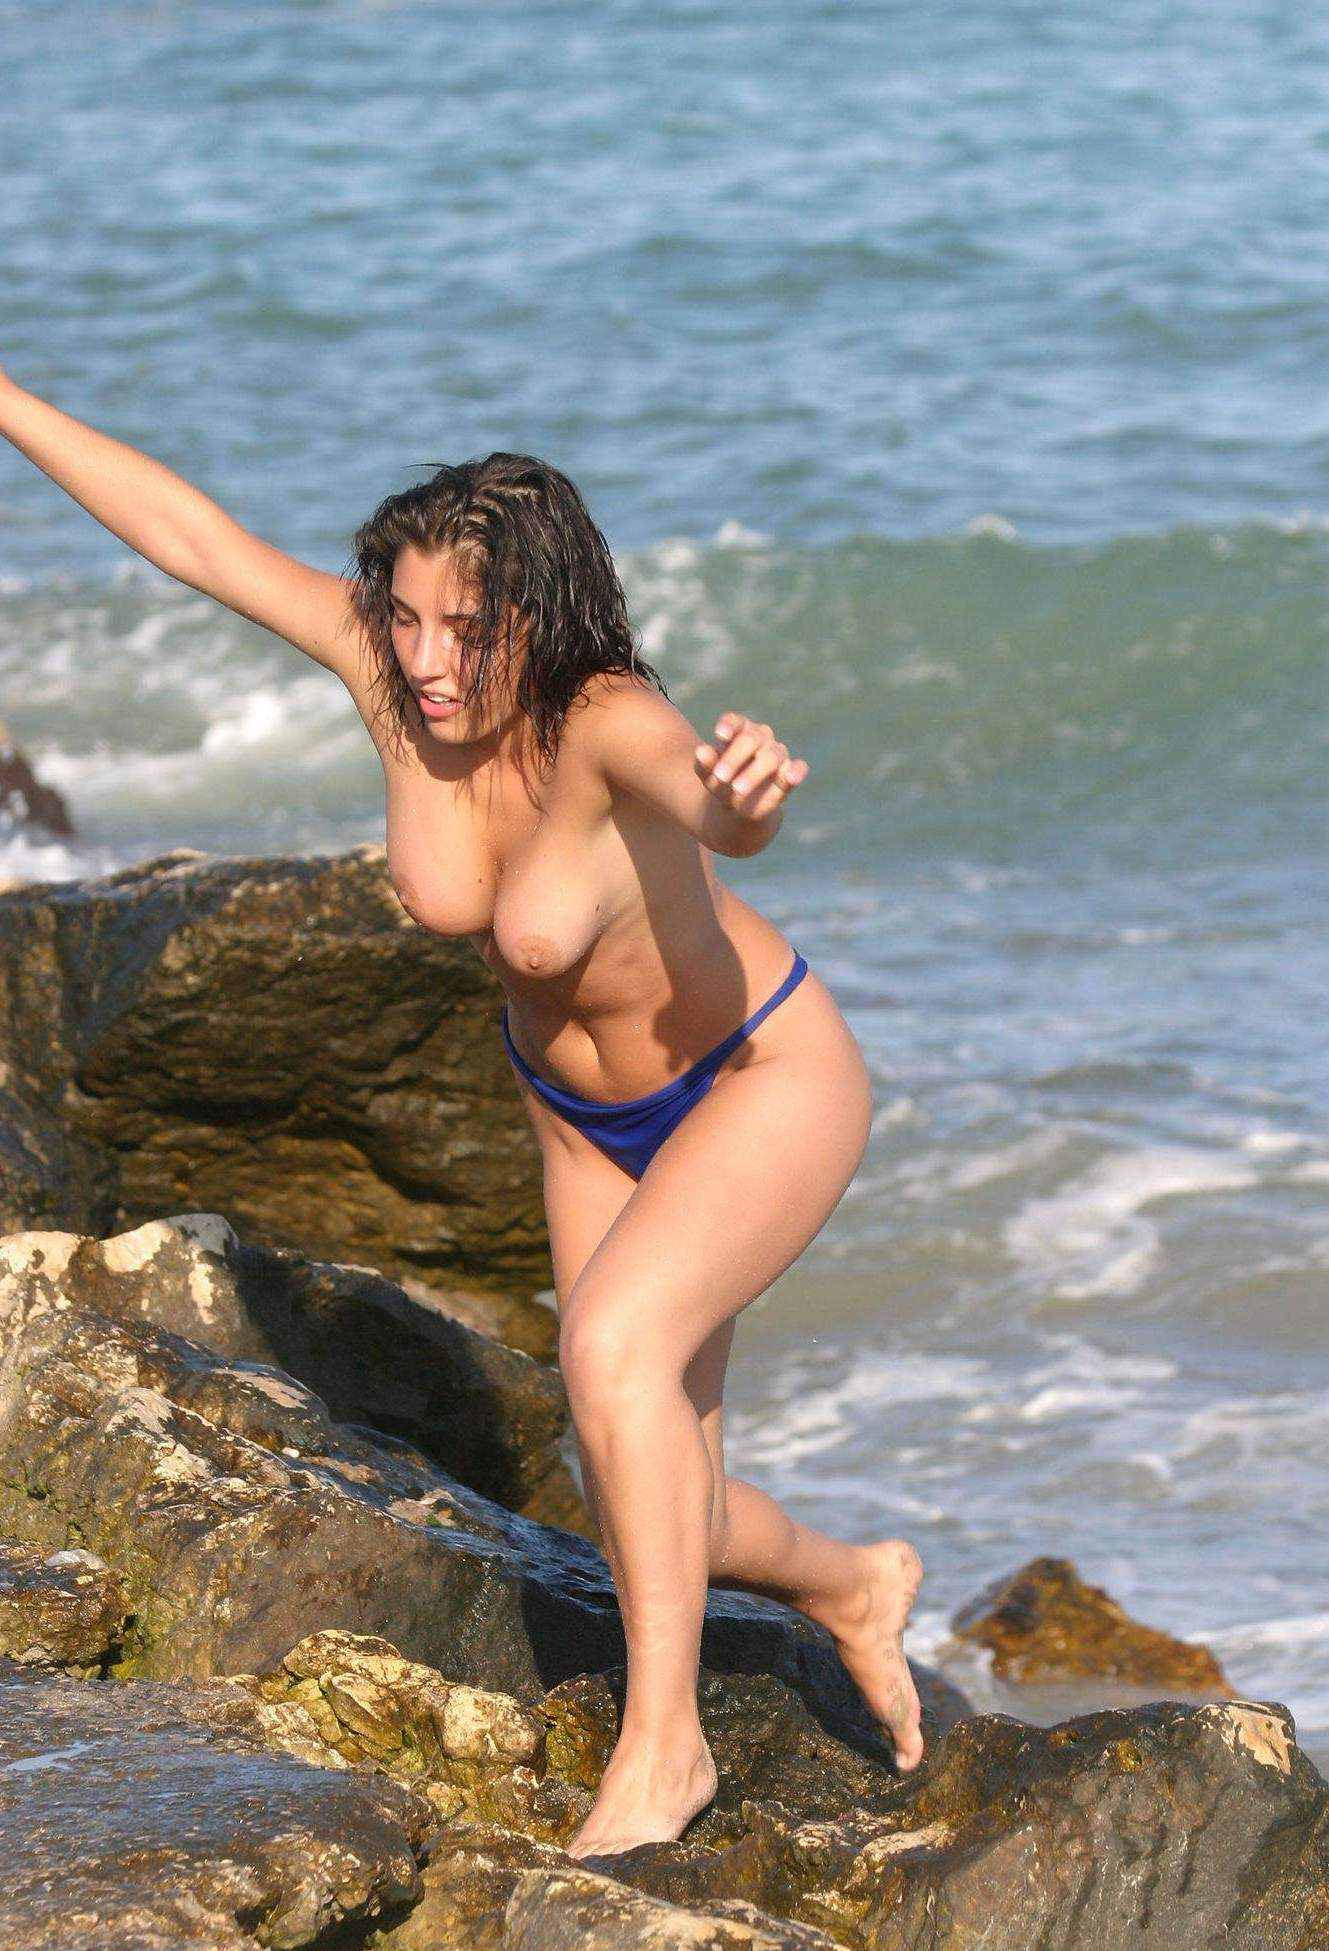 Hottie caught topless while exiting from water